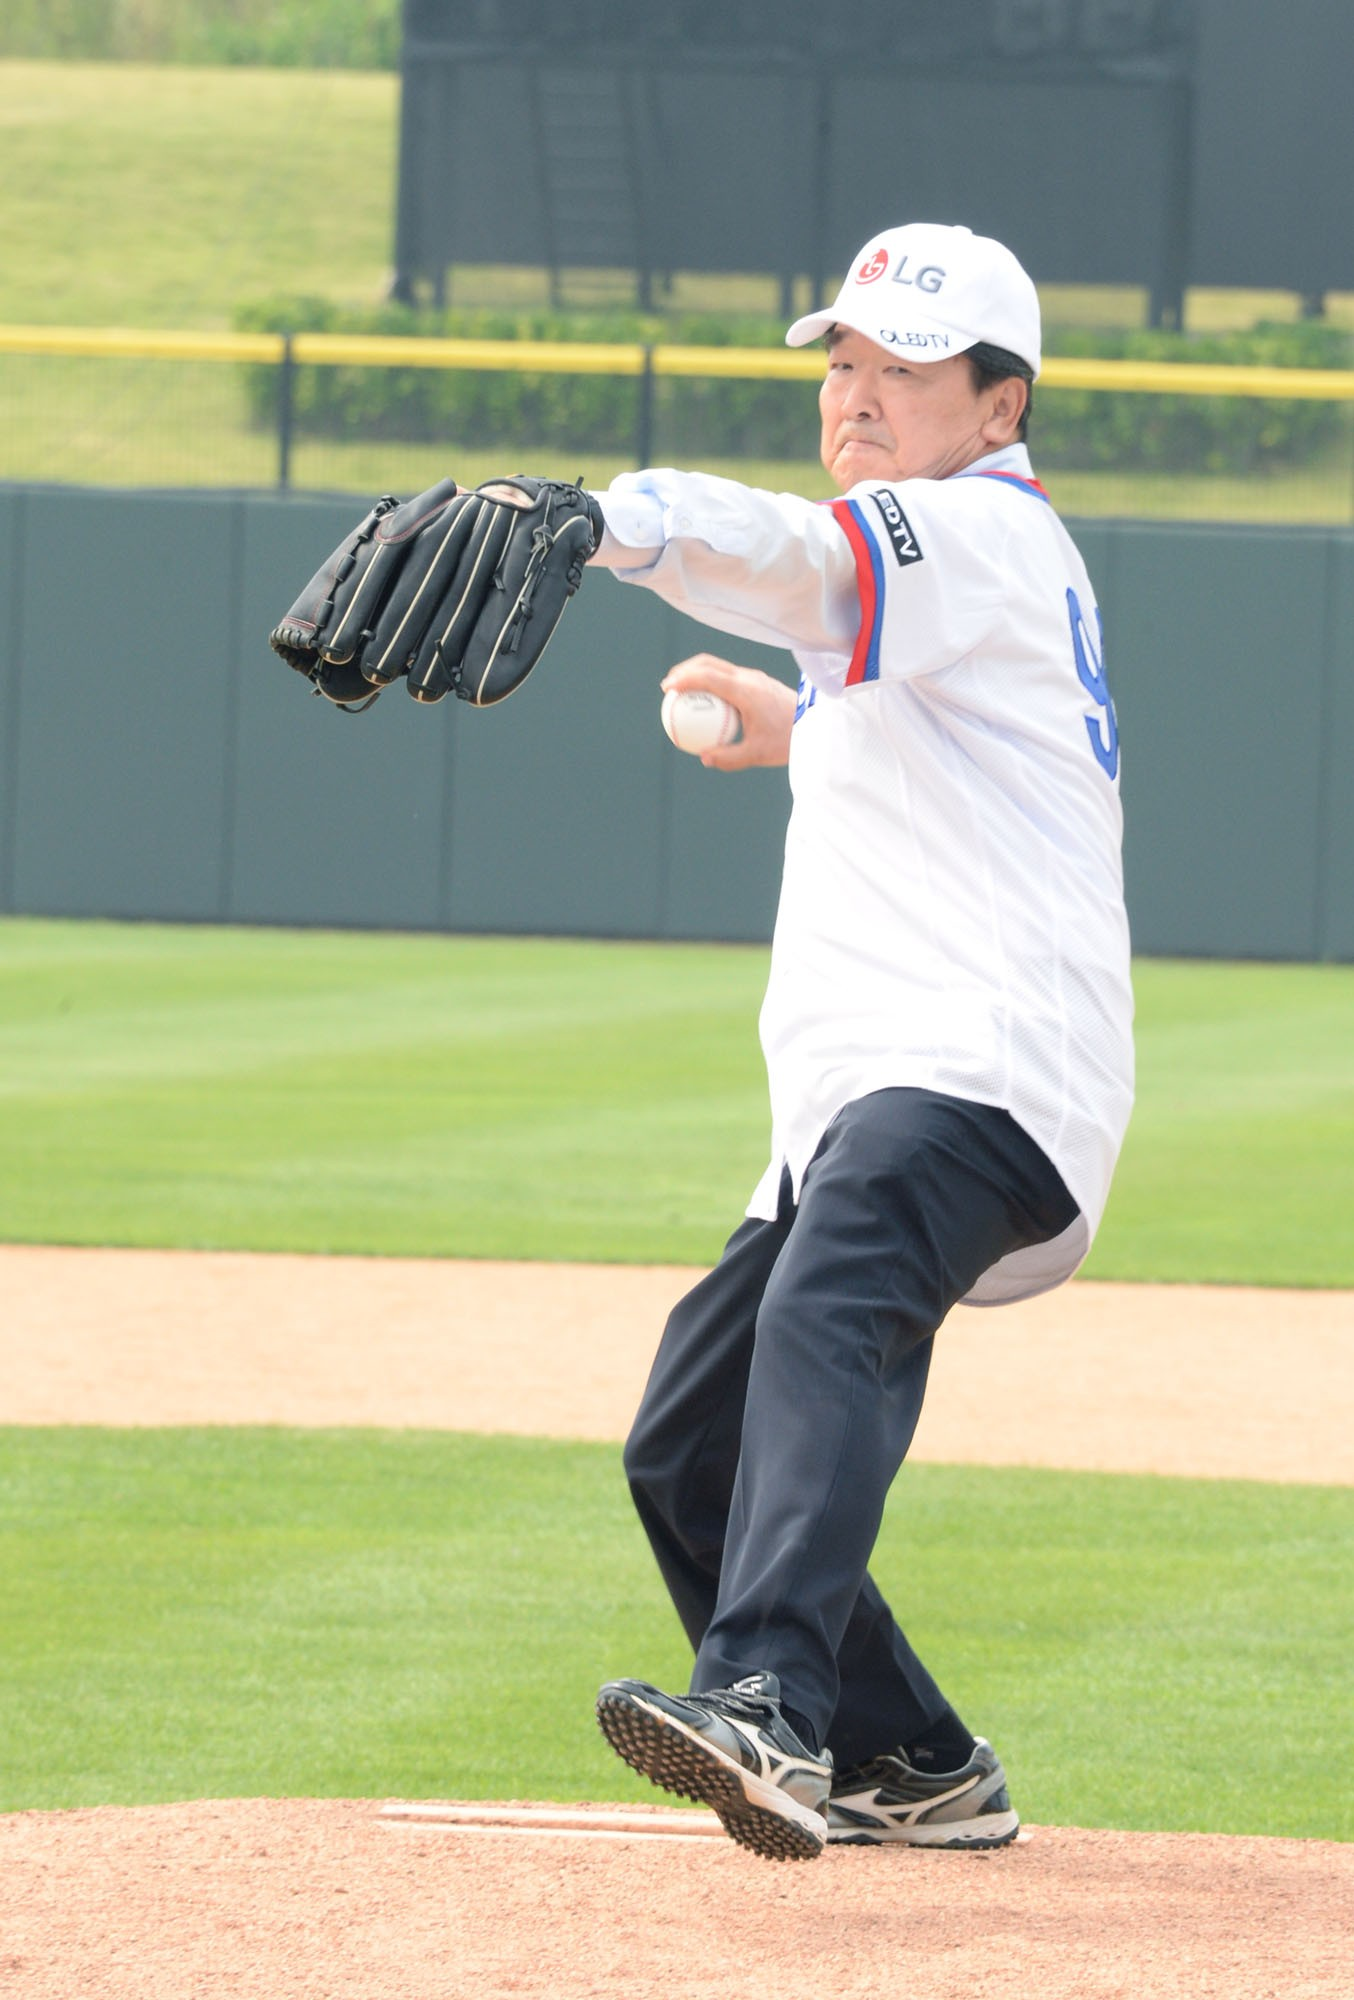 Koo Bon-joon, vice chairman and CEO of LG Electronics, throws the game's ceremonial first pitch.